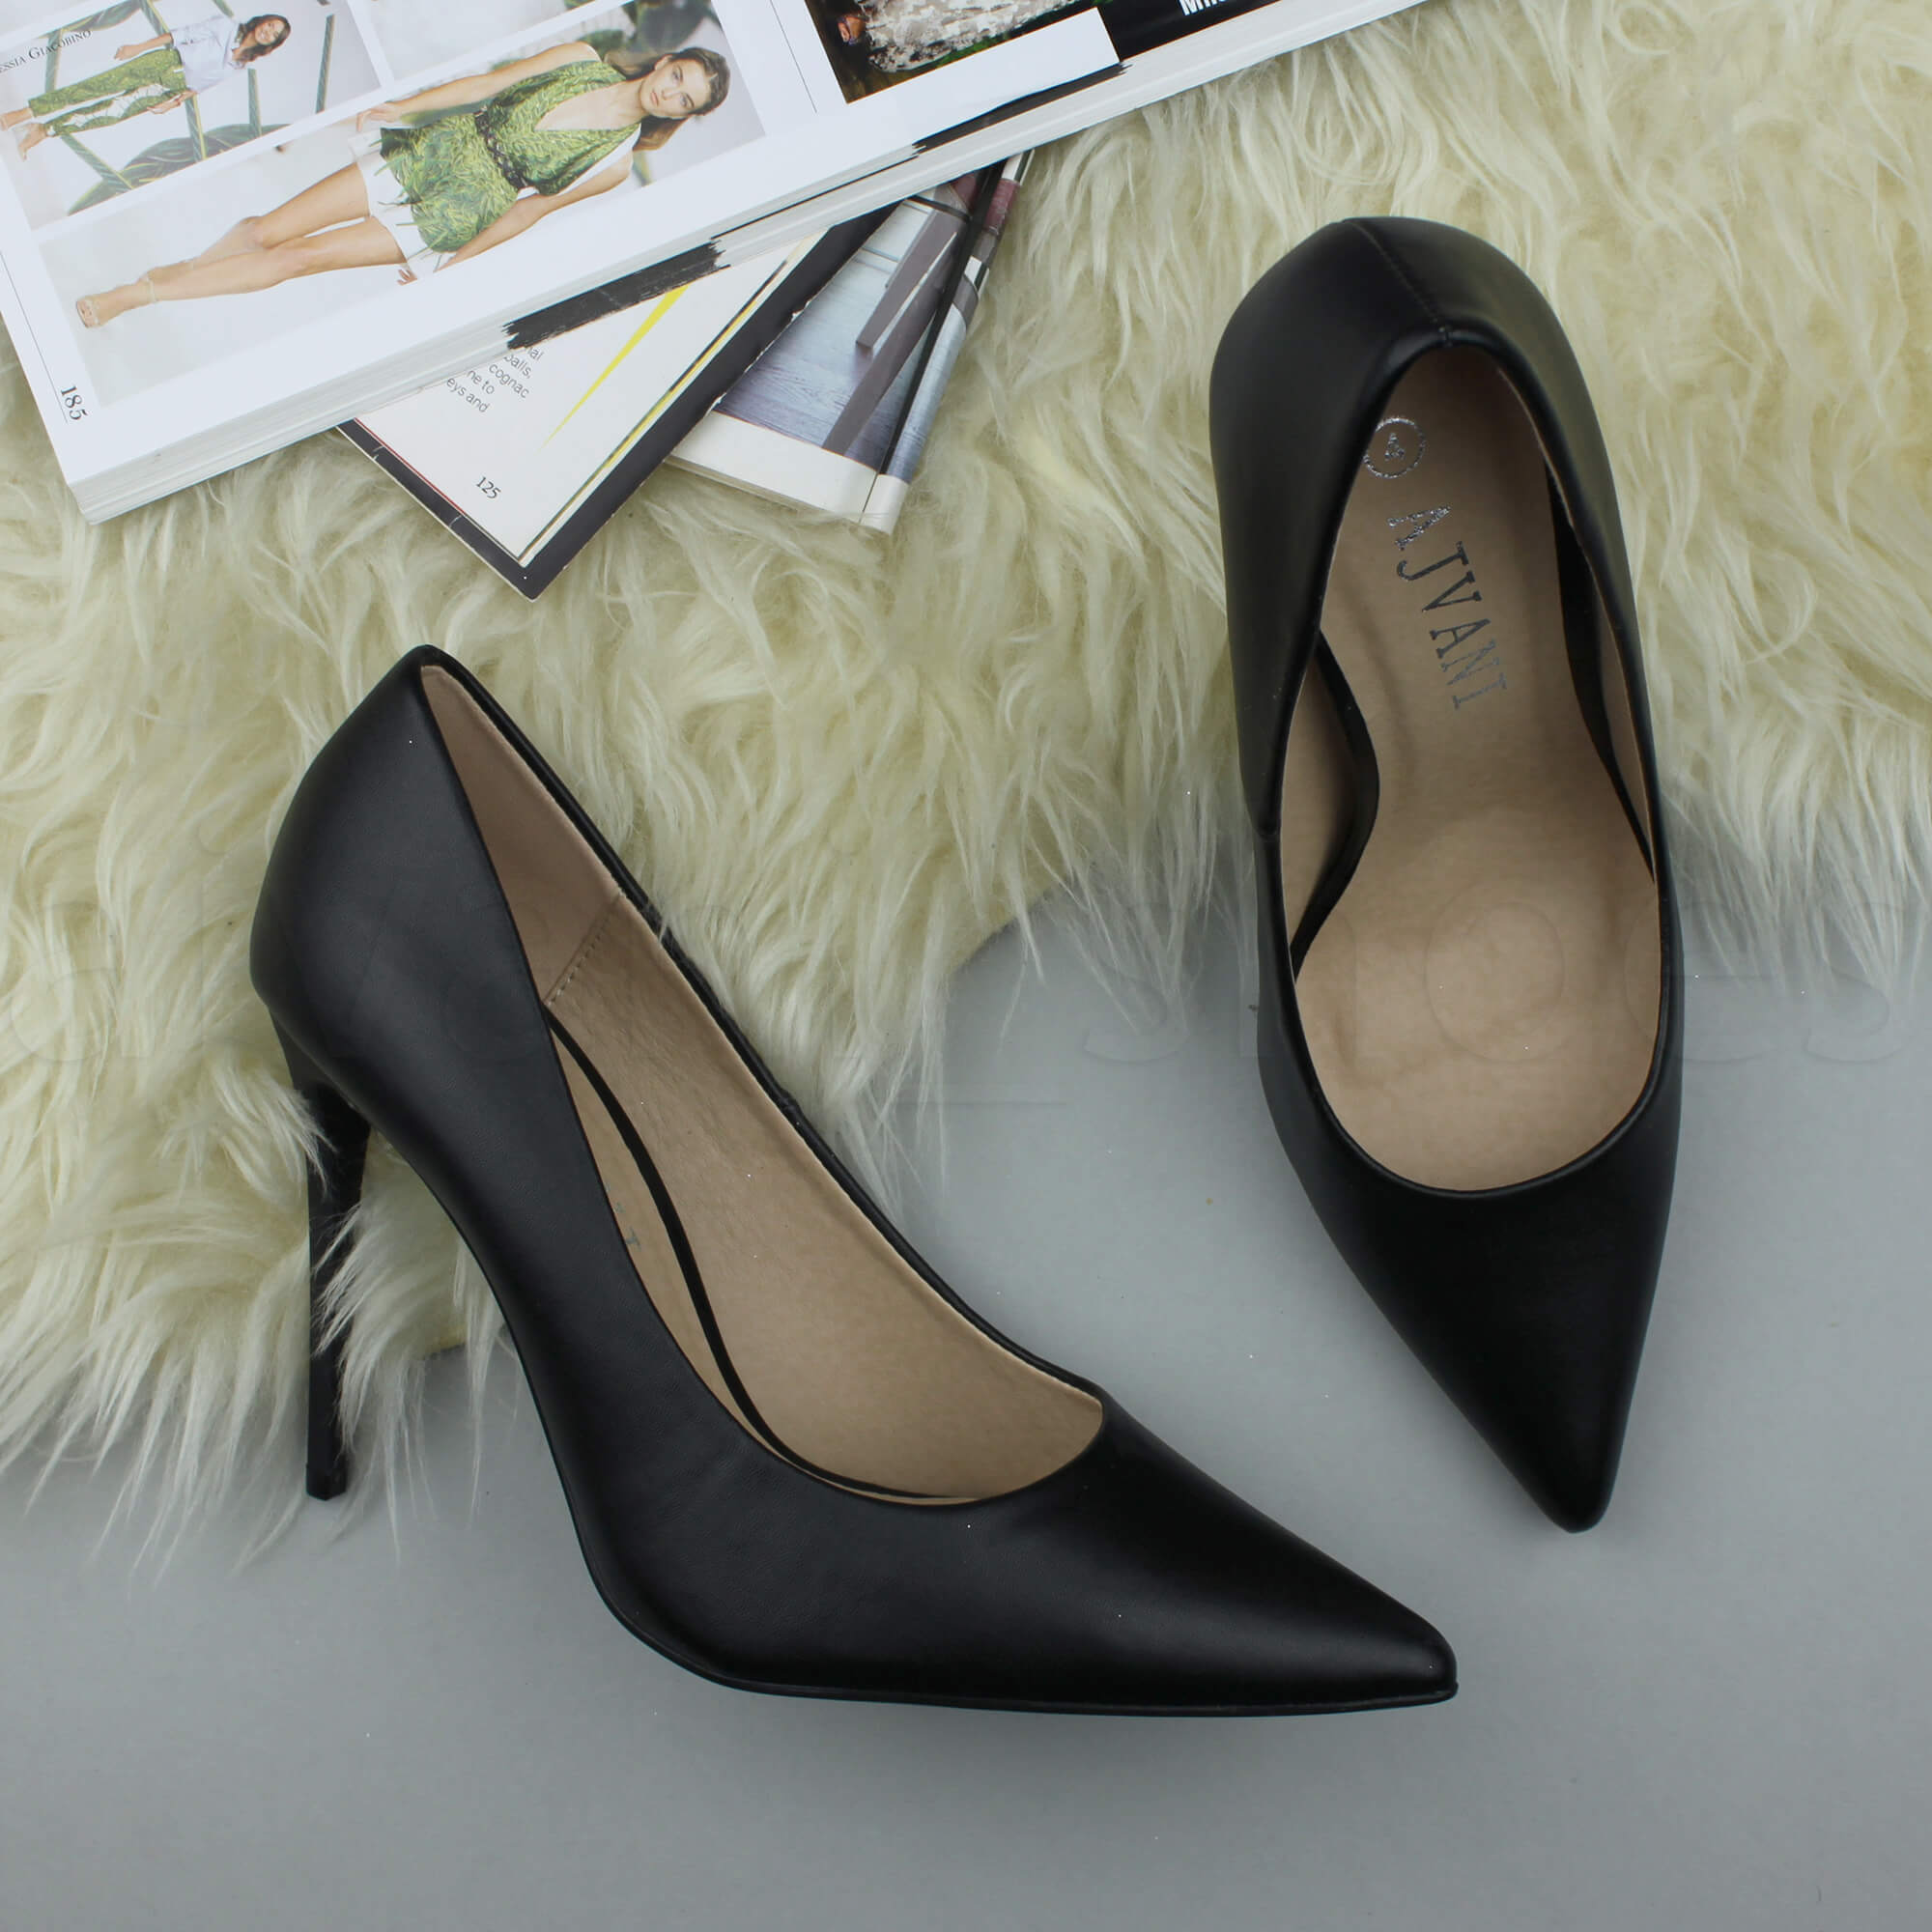 WOMENS-LADIES-HIGH-HEEL-POINTED-CONTRAST-COURT-SMART-PARTY-WORK-SHOES-PUMPS-SIZE thumbnail 13